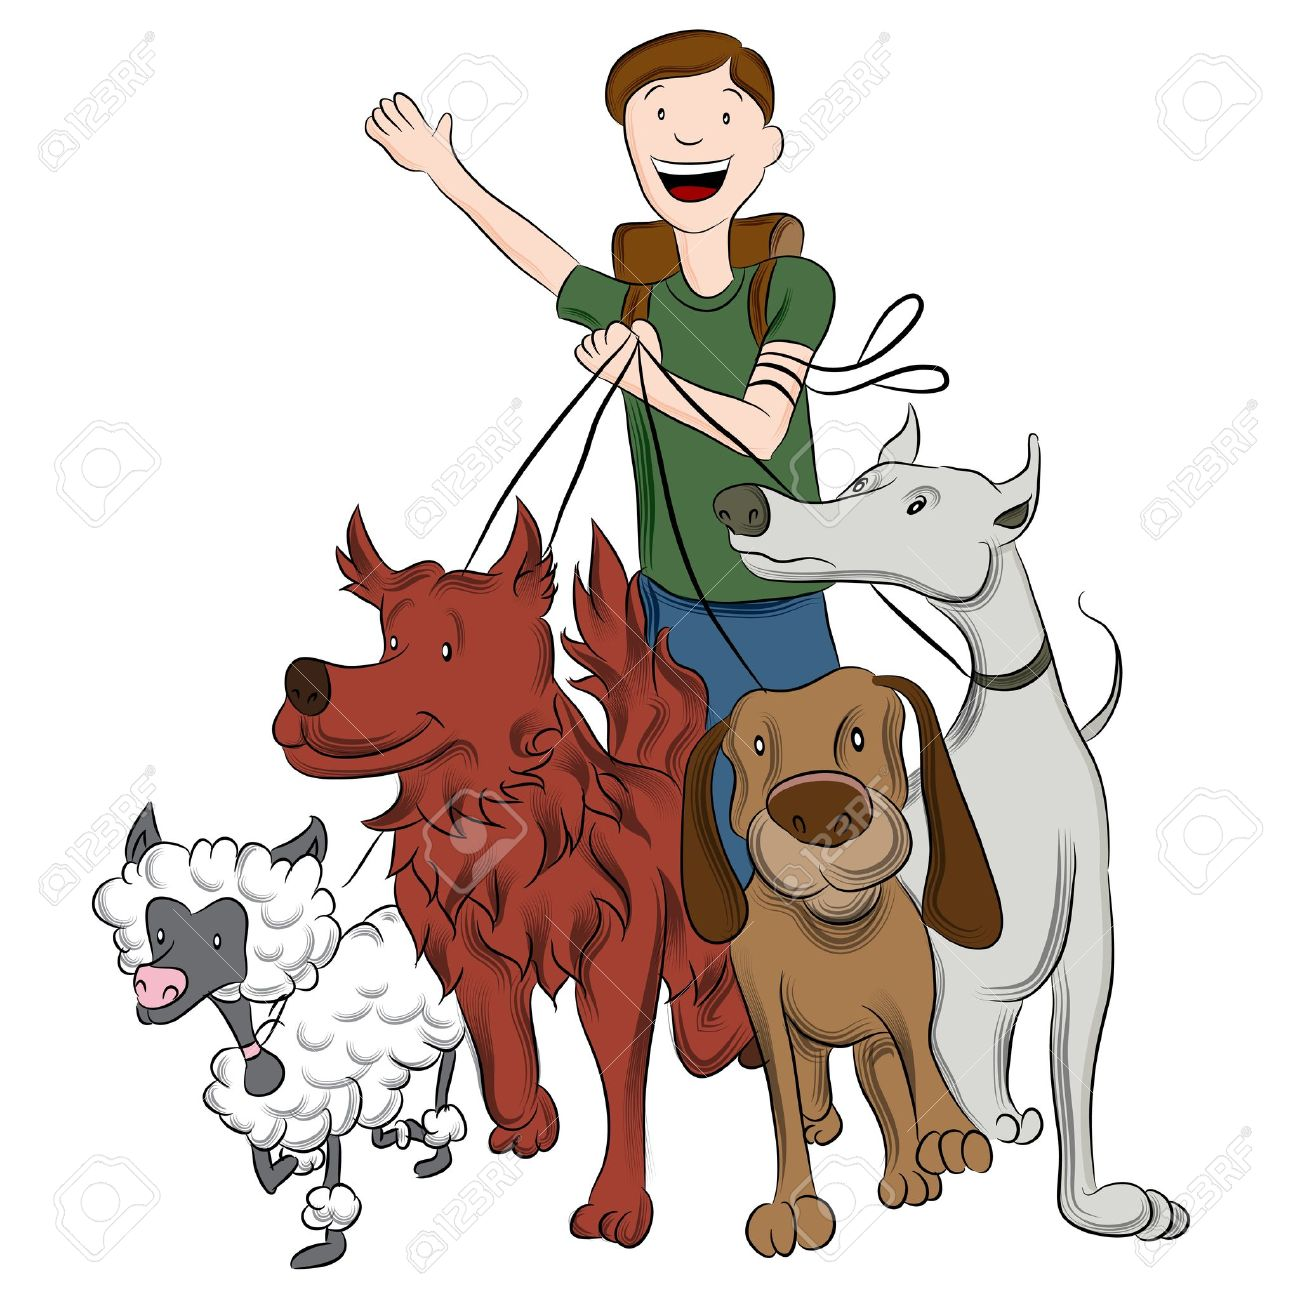 1300x1300 An Image Of A Man Walking Dogs. Royalty Free Cliparts, Vectors